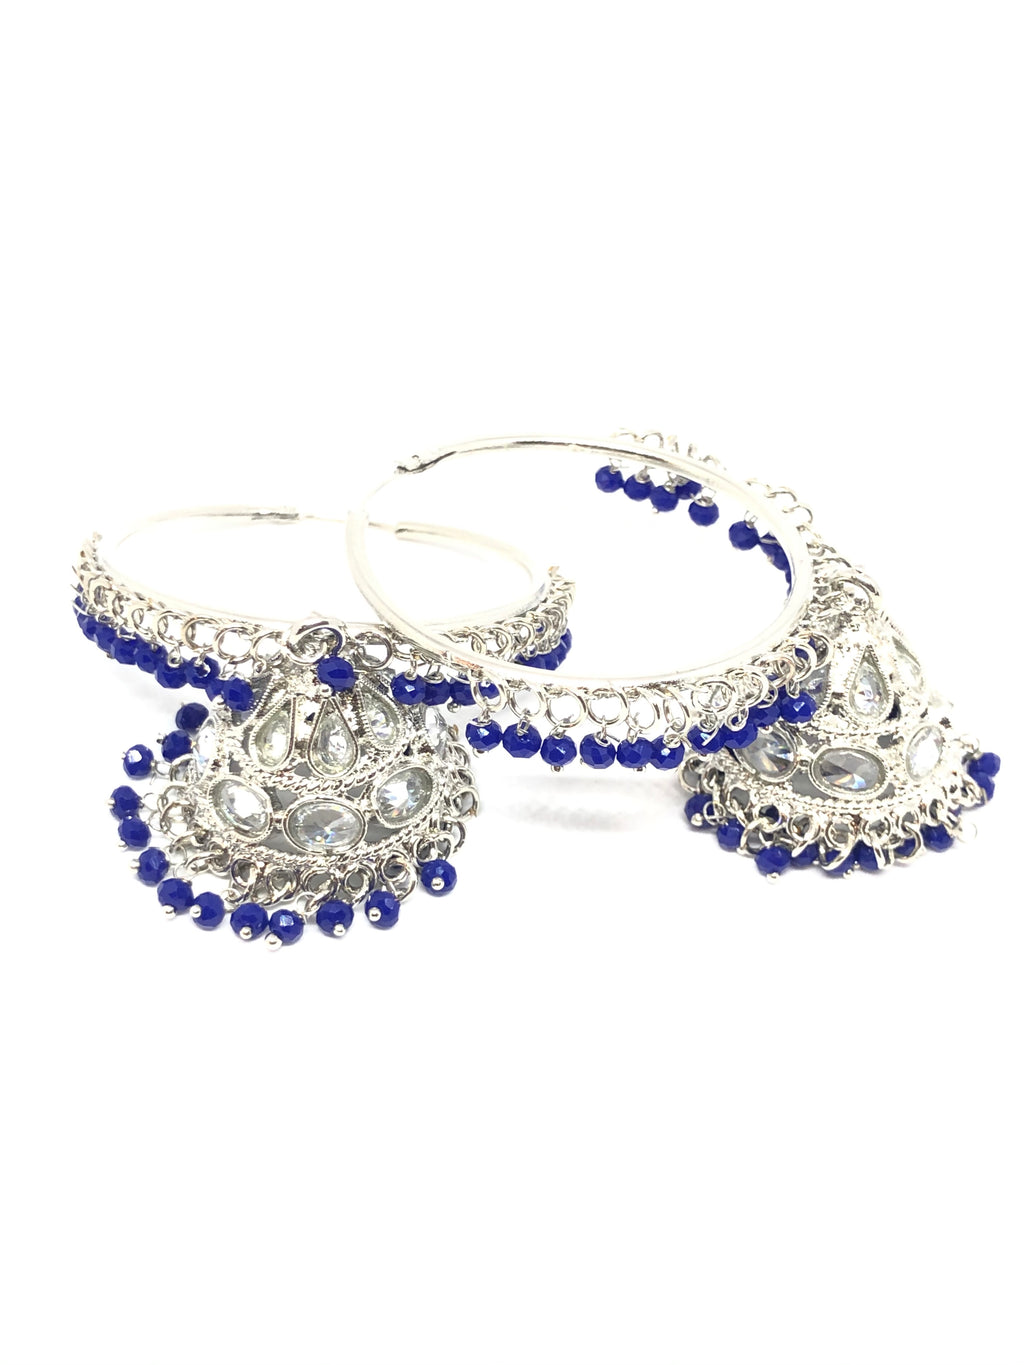 Silver Bali Hoop Indian Earrings in Blue